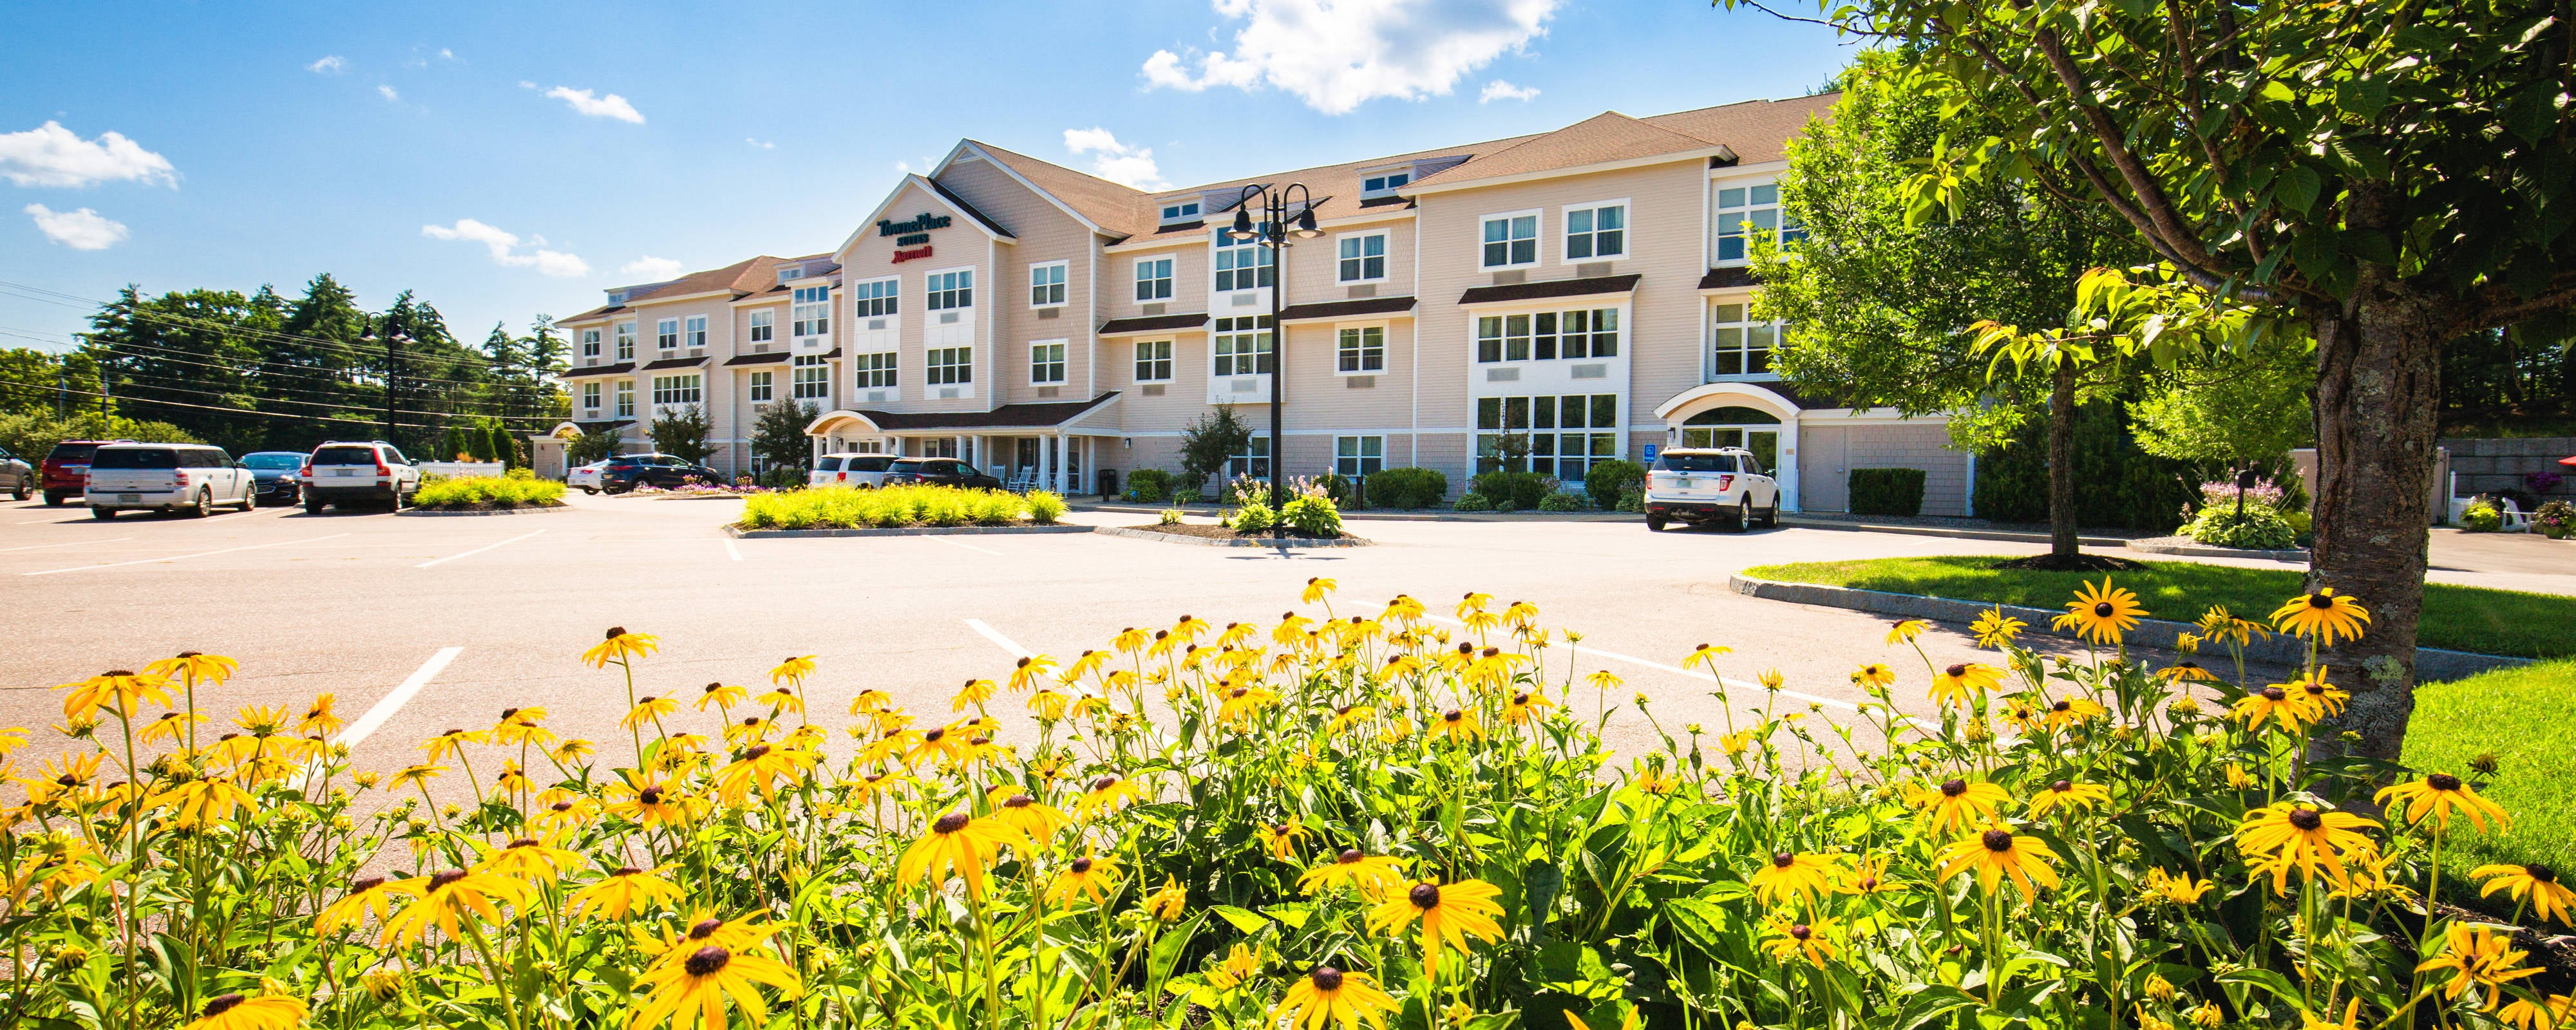 Marriott Towneplace Suites Hotel Gilford New Hampshire